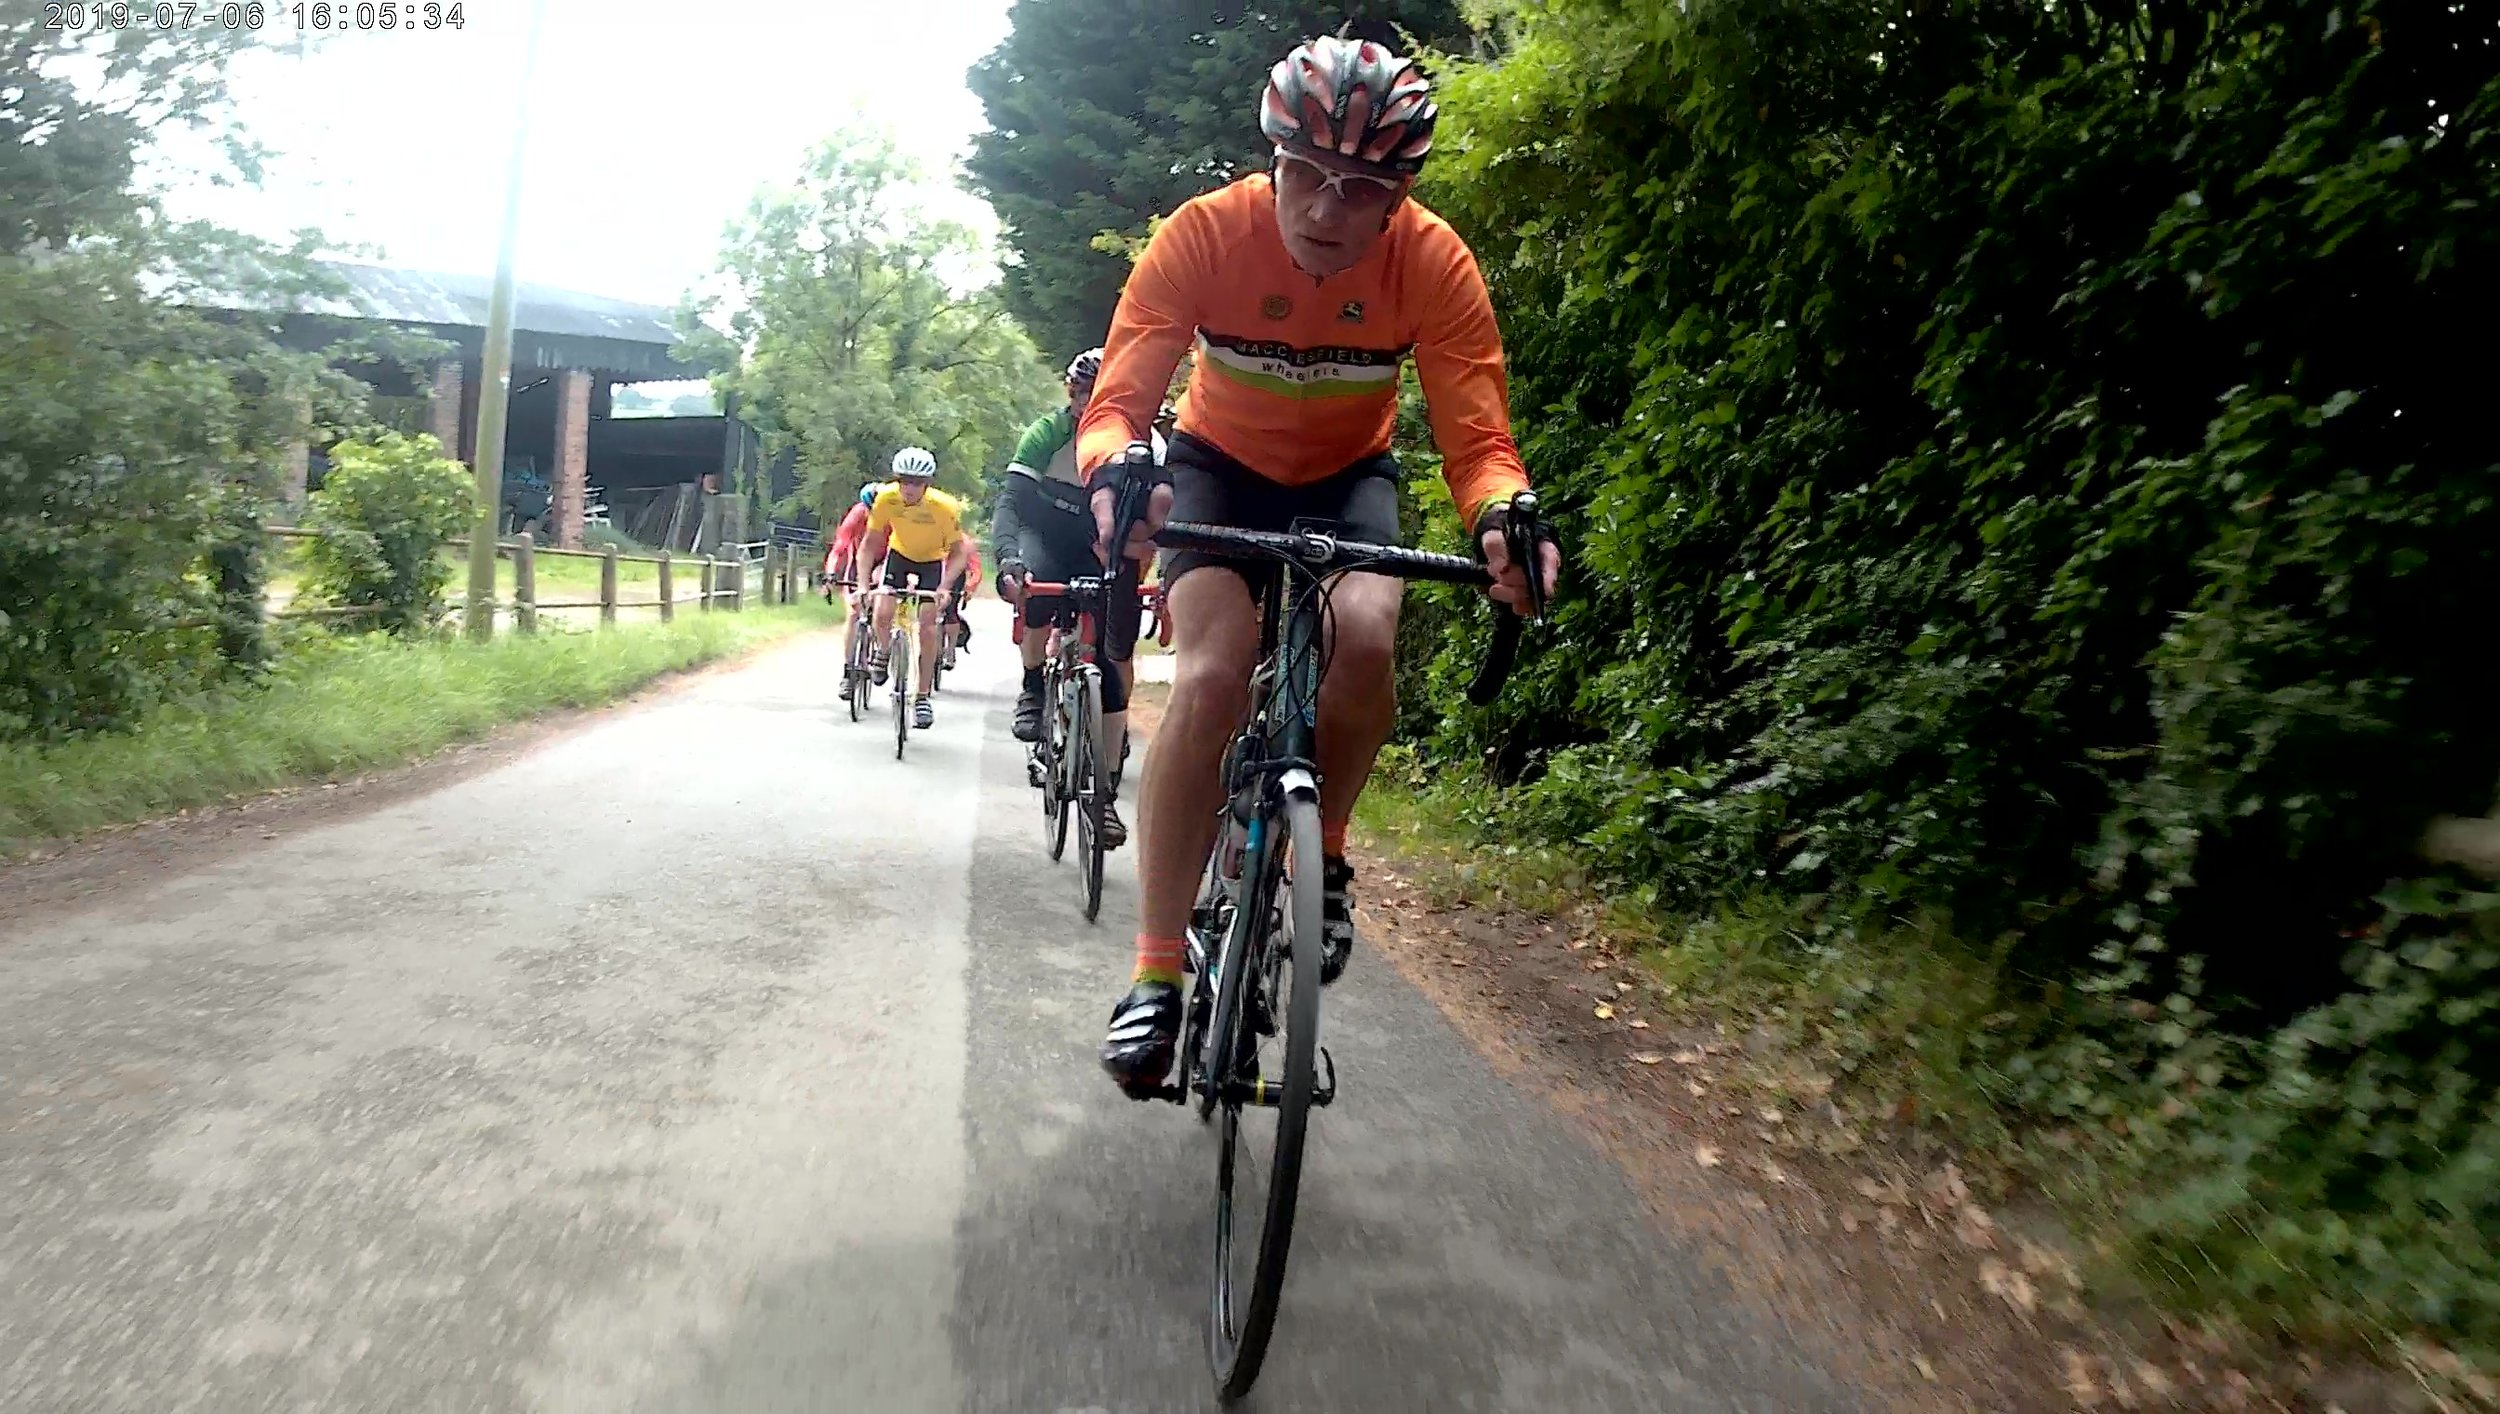 Nigel setting the pace on the climb up from the River Weaver